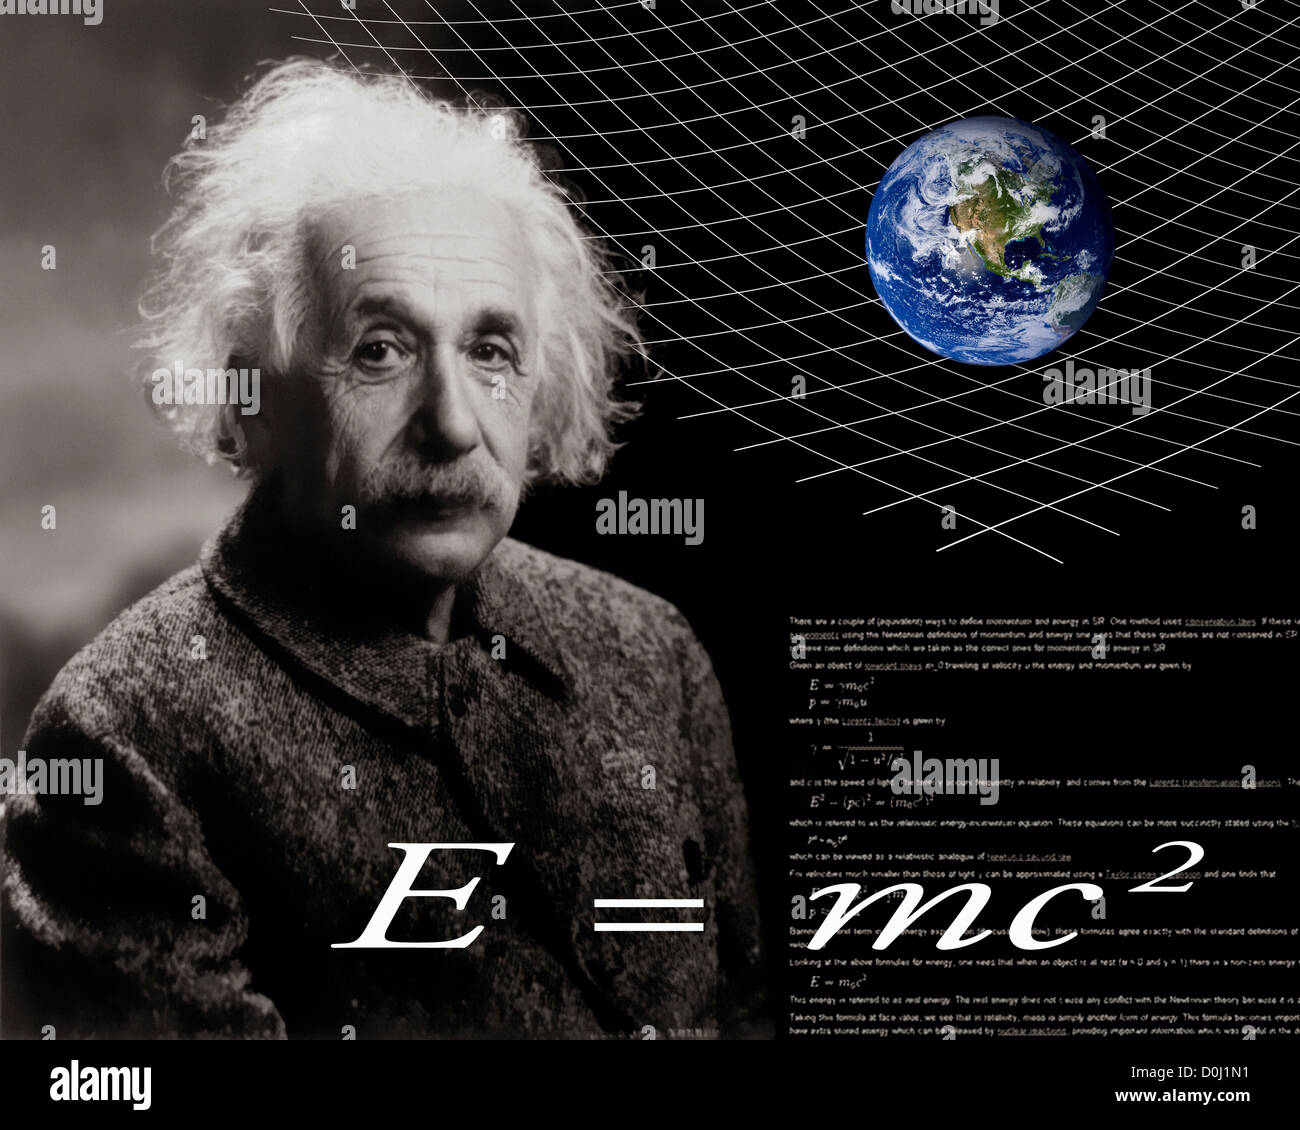 Albert Einstein And His Theory Of Relativity Essay Homework Example  Albert Einstein And His Theory Of Relativity Essay Included Albert Einstein  Essay Content Preview Text